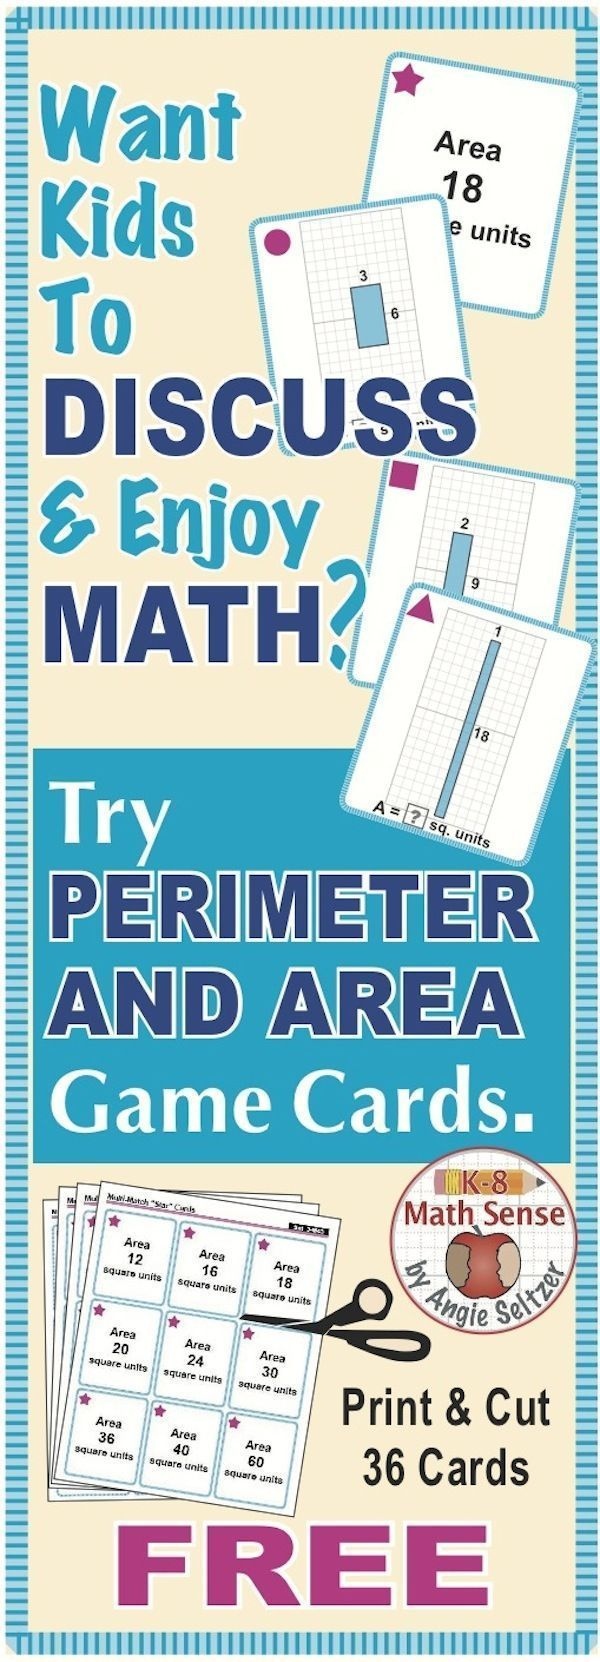 107 best 5th math perimeter area volume images on Pinterest | School ...